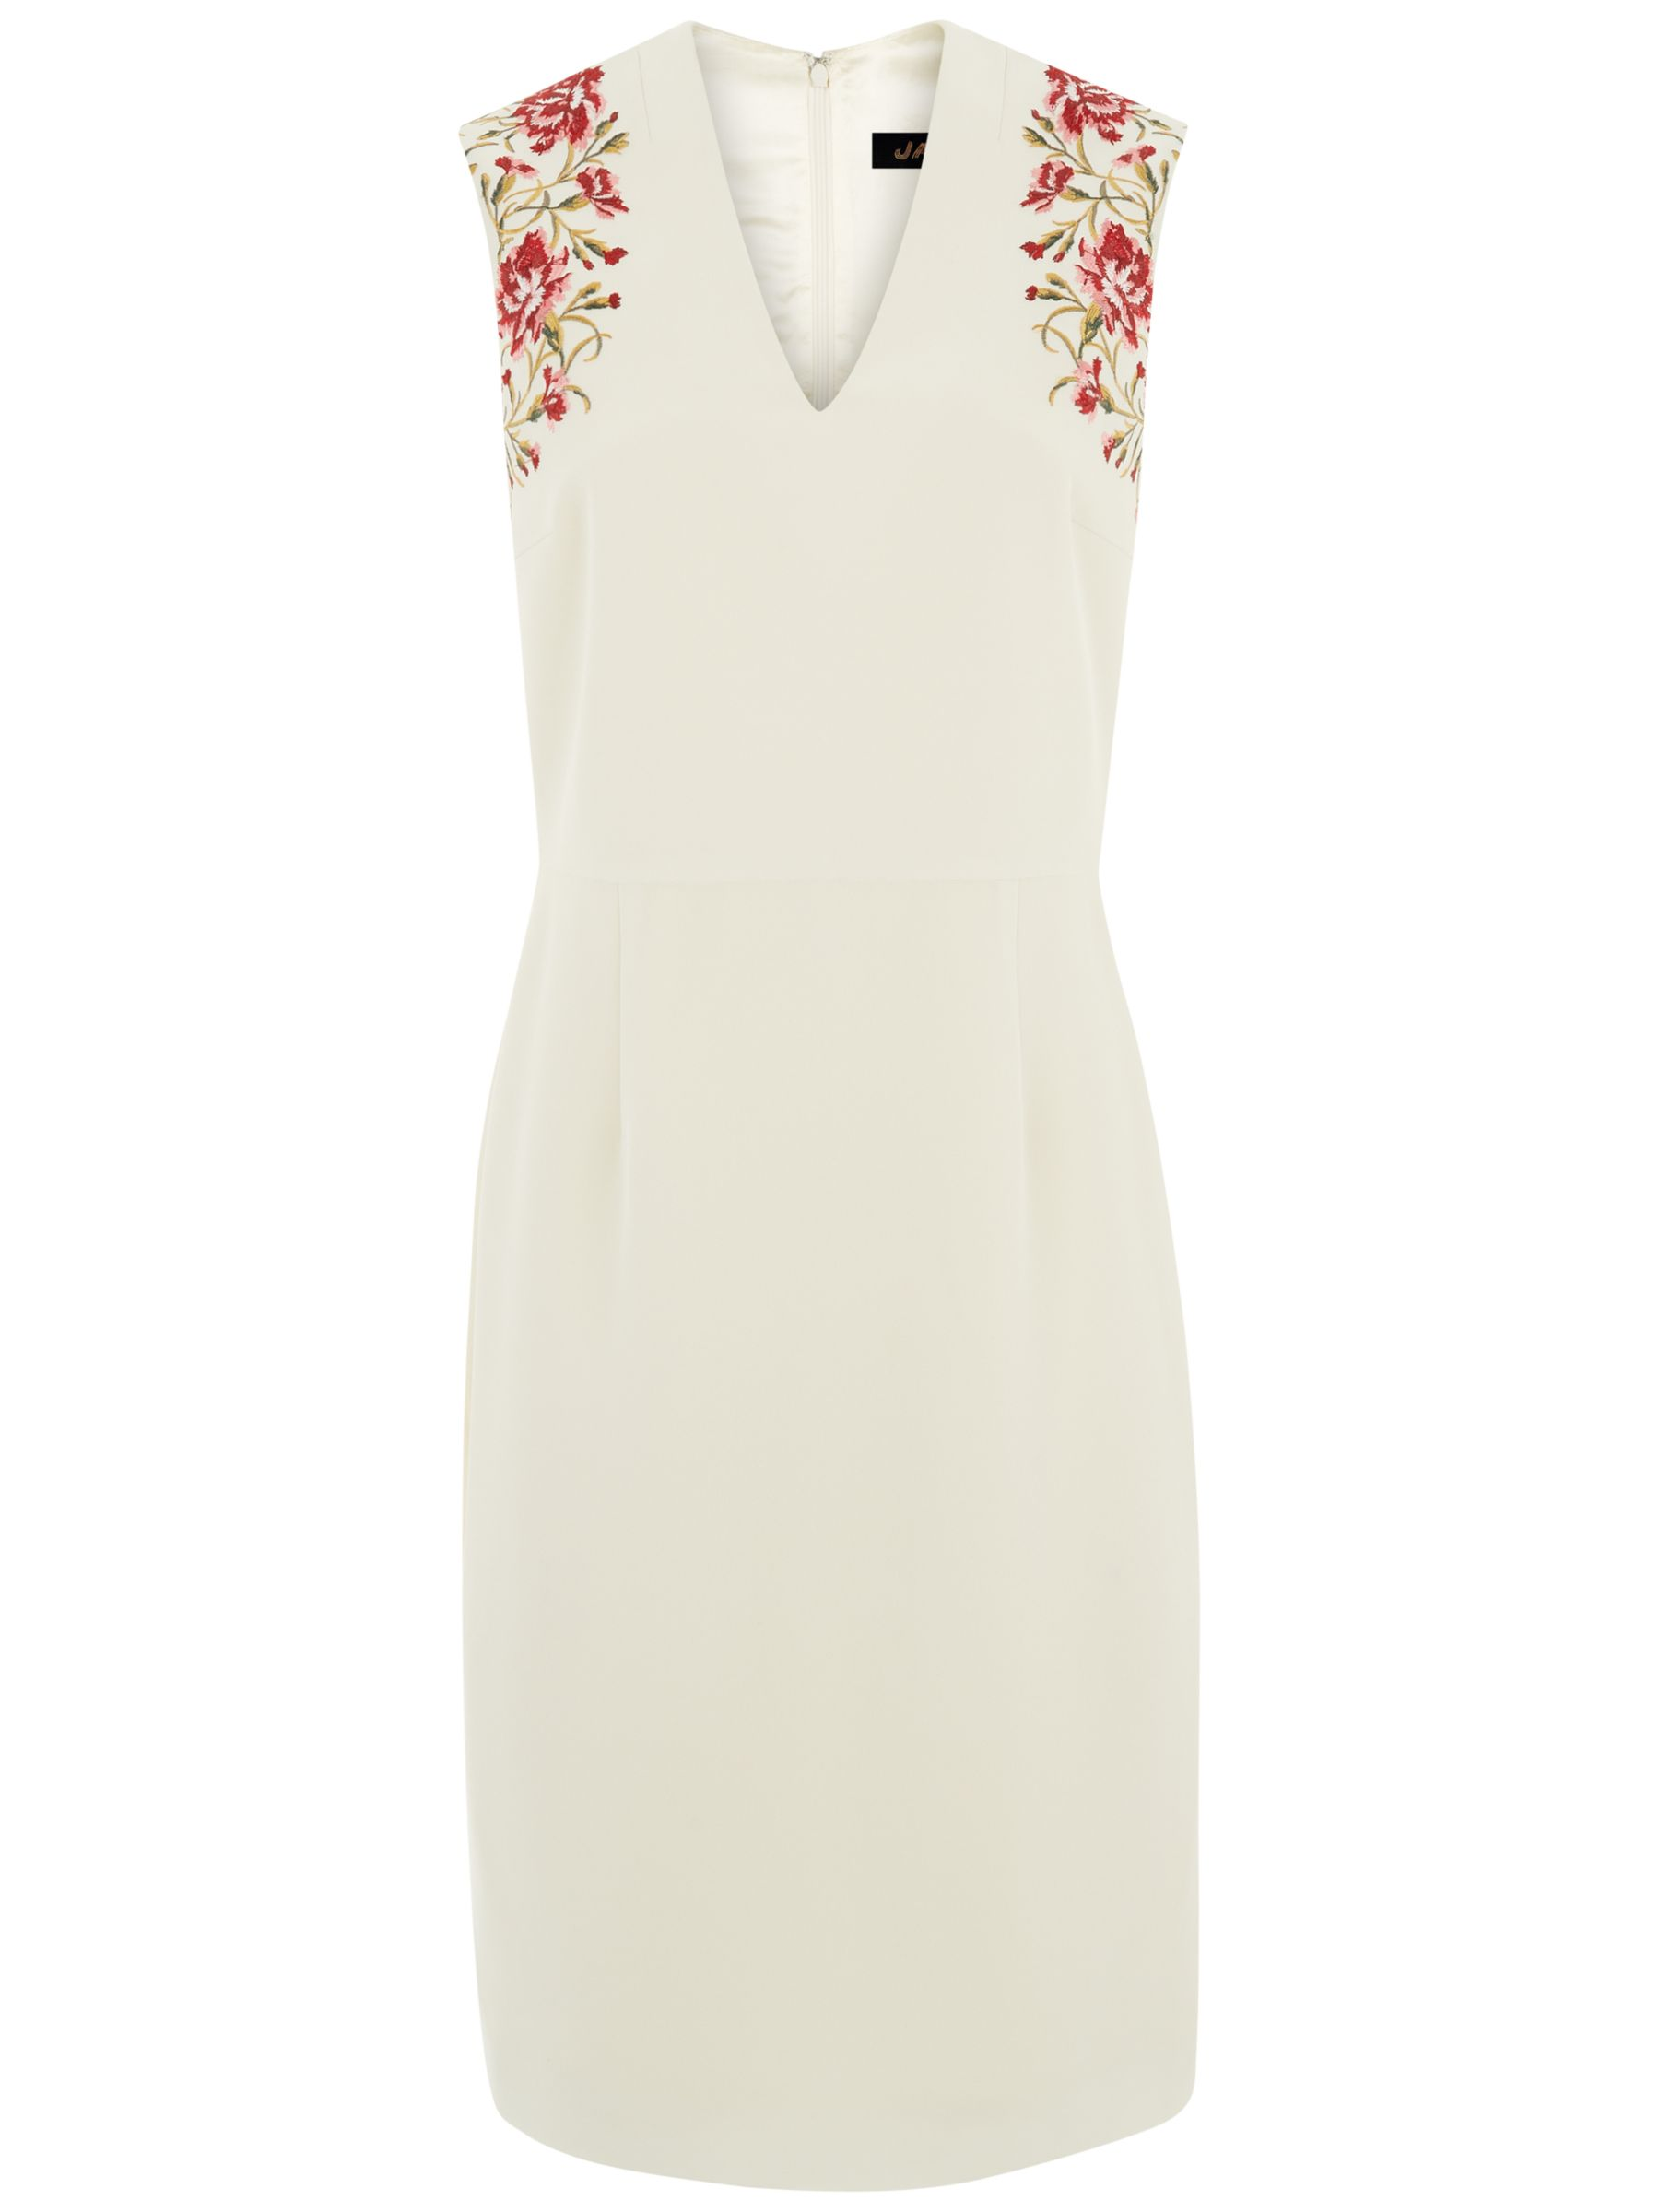 jaeger embroidery dress white/pink, jaeger, embroidery, dress, white/pink, 6|18|14|12|8|16|10, women, womens dresses, gifts, wedding, wedding clothing, female guests, 1901333